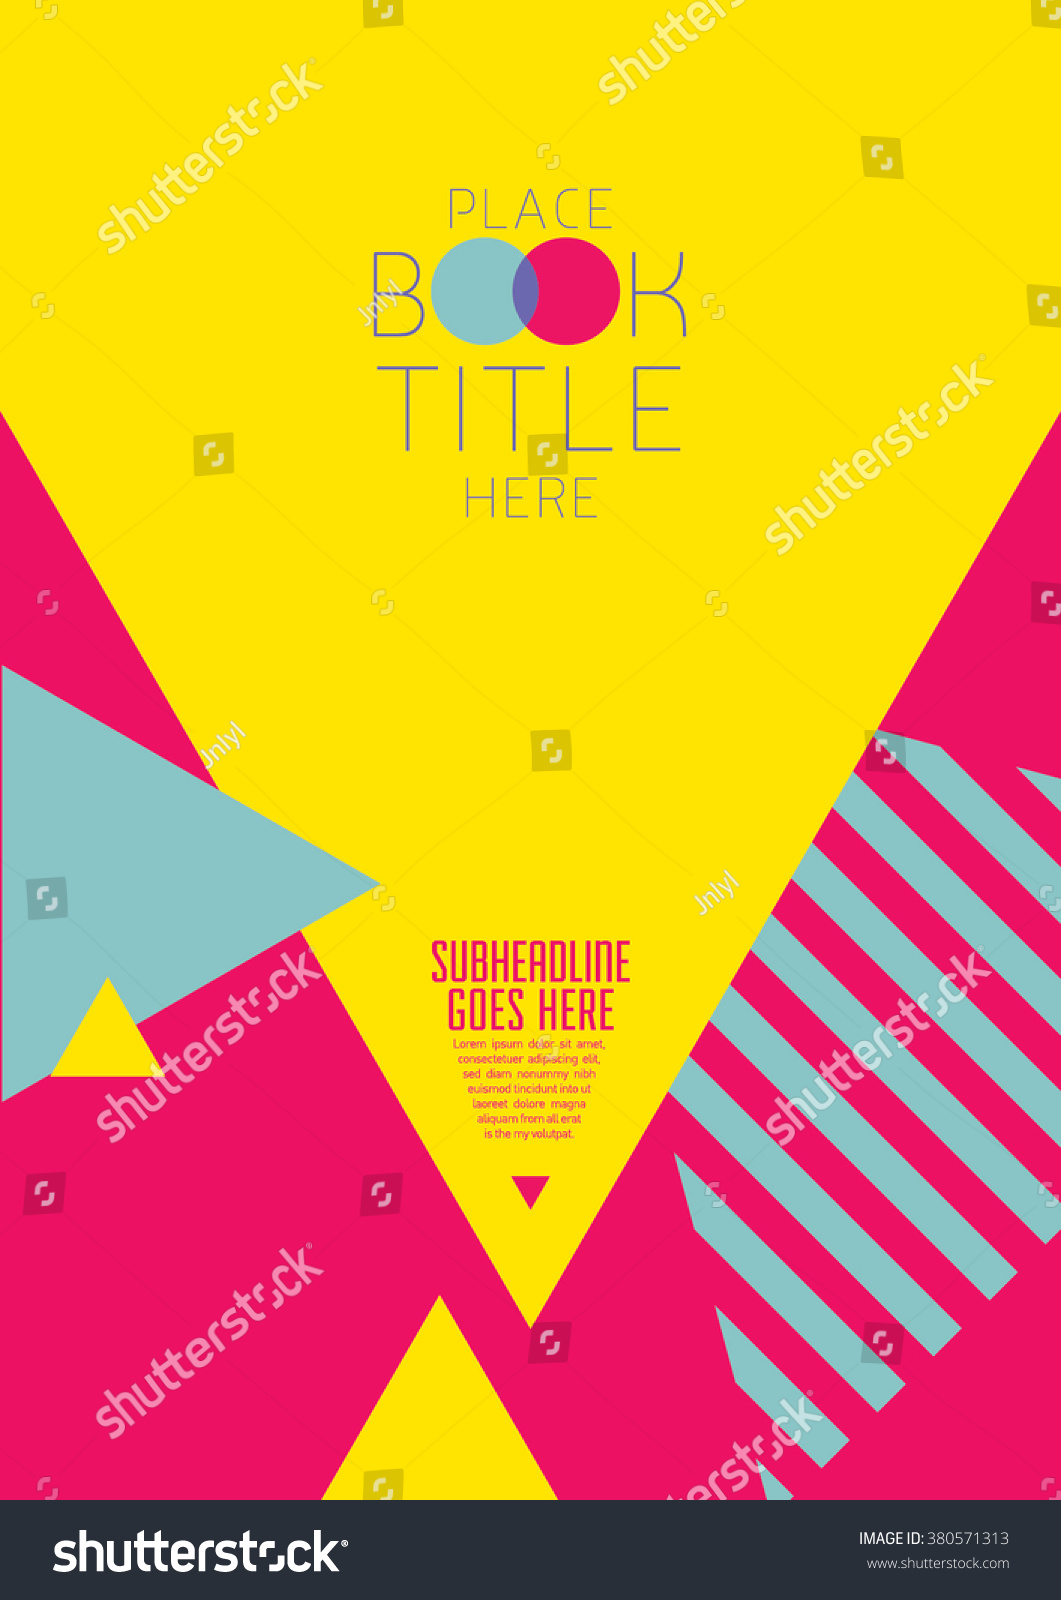 abstract poster design background - photo #6